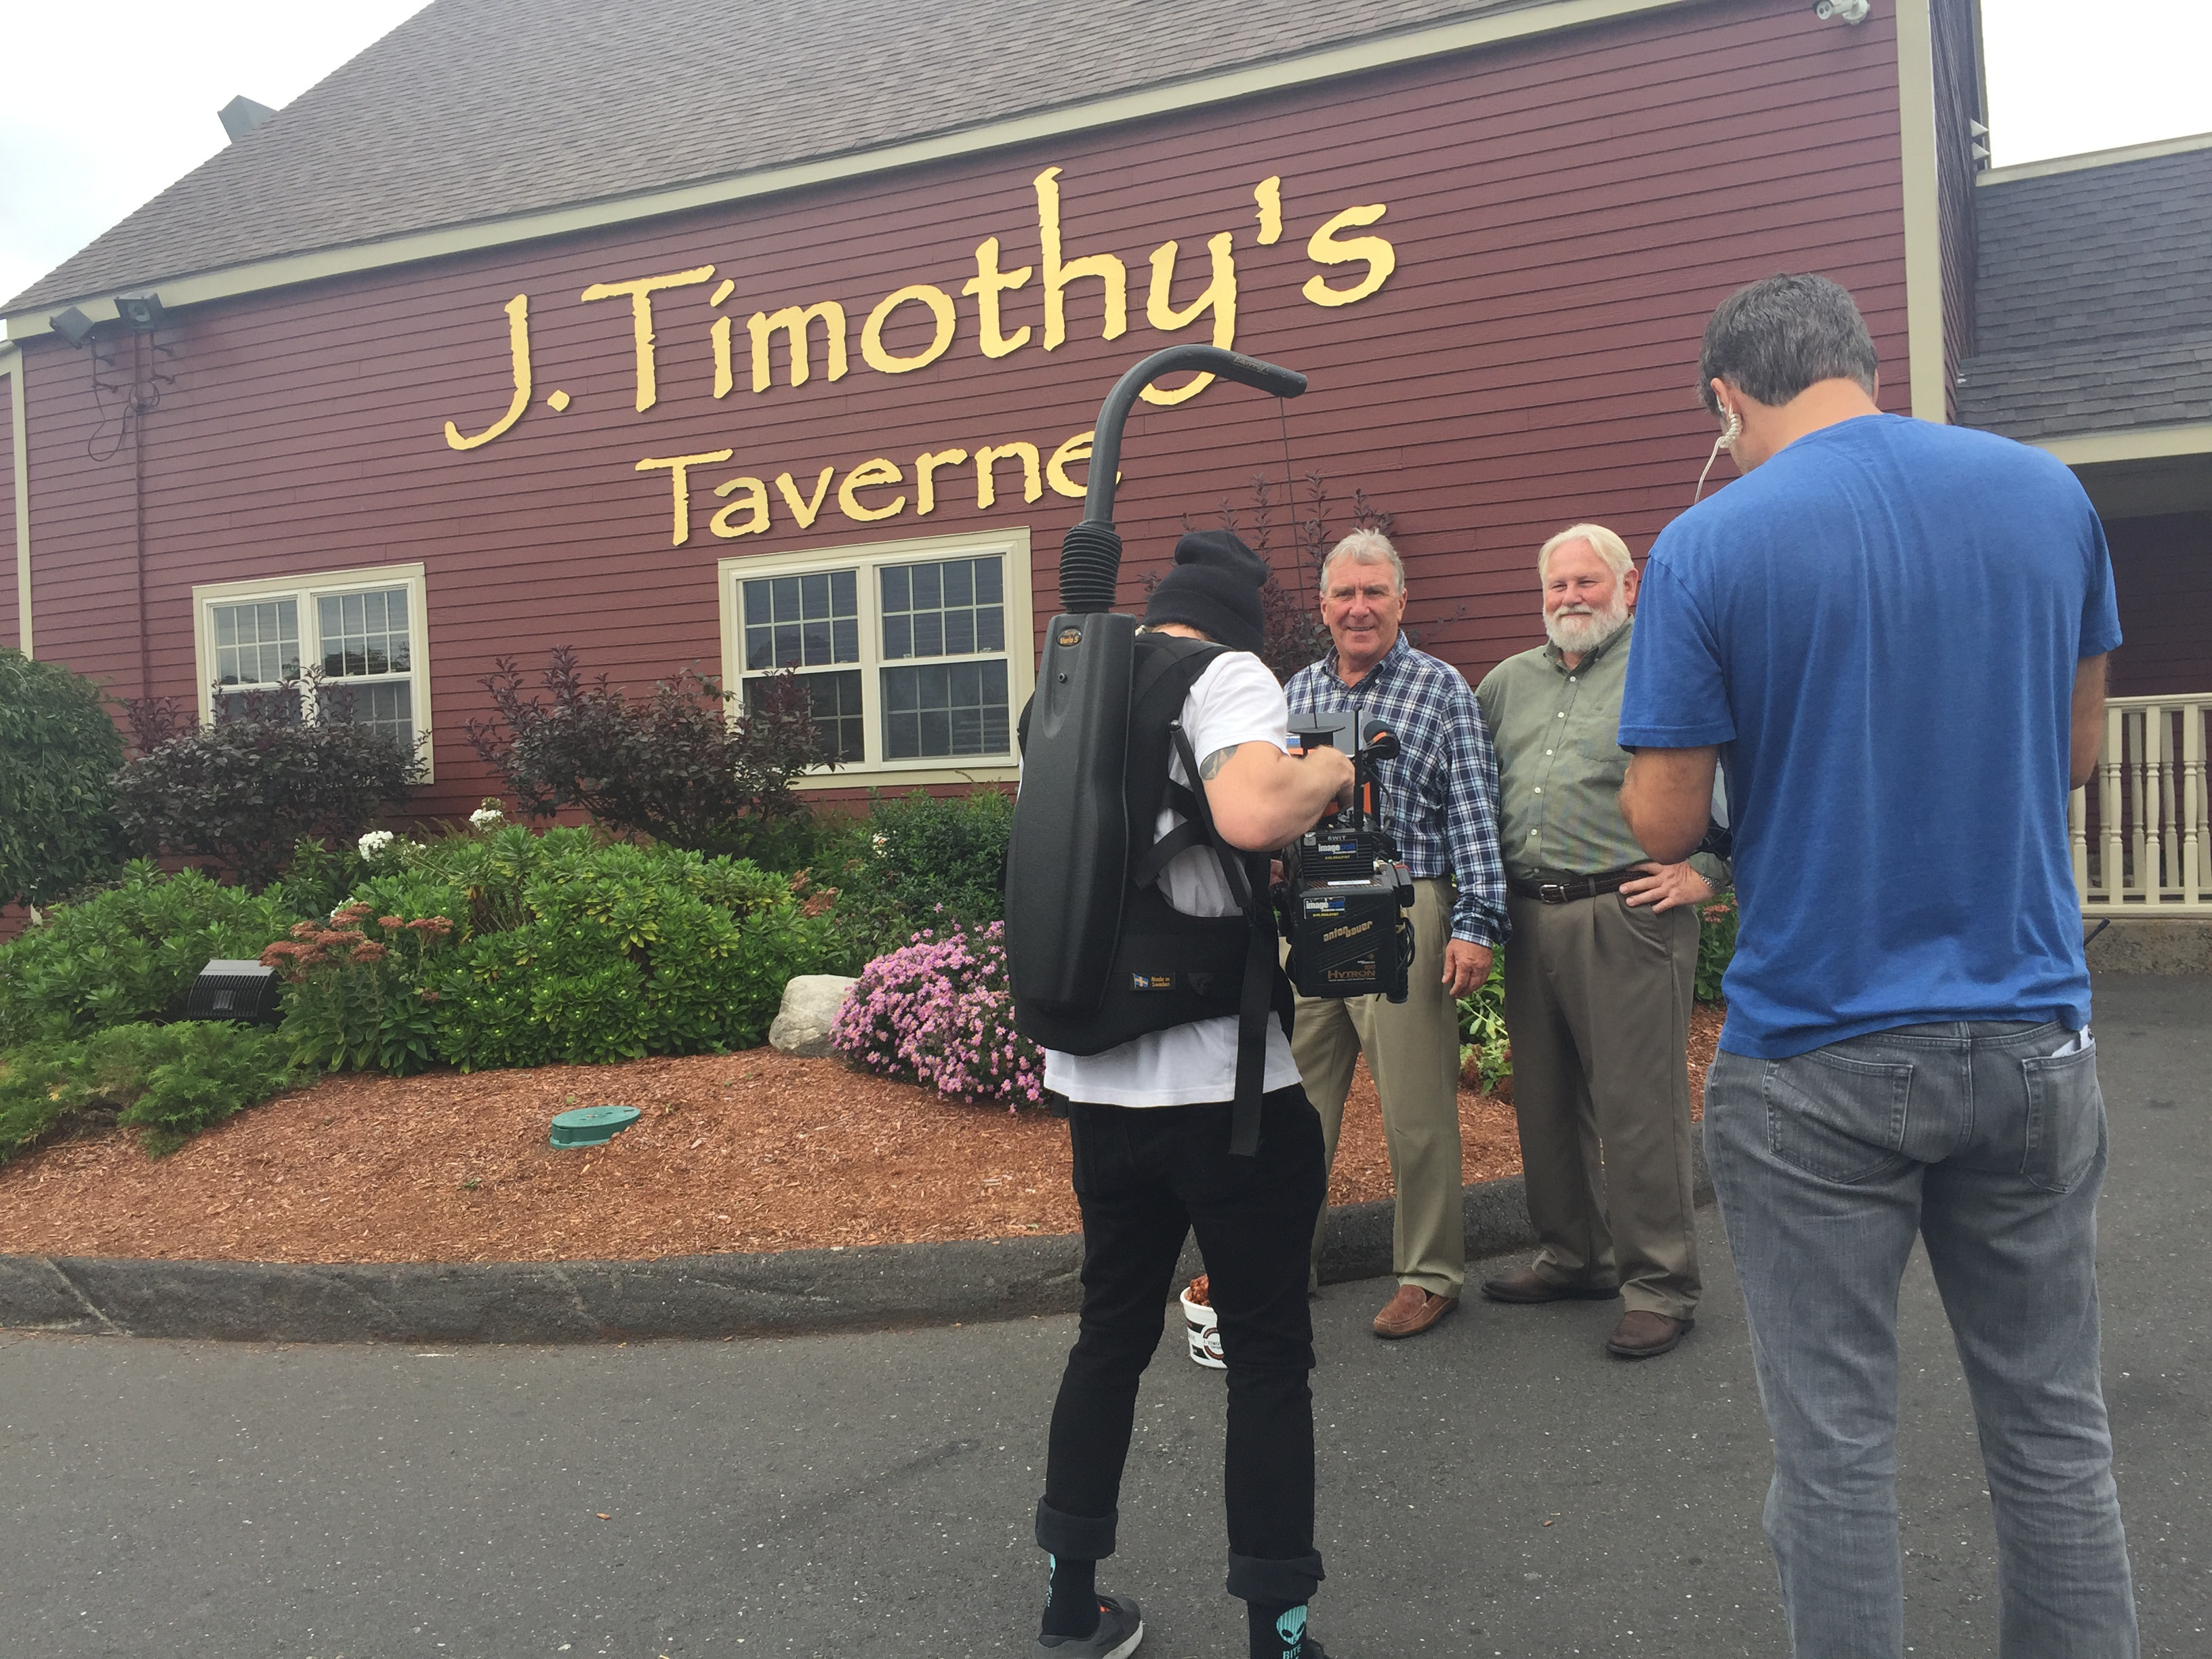 The Travel Channel filmed a segment for Food Paradise at J. Timothy